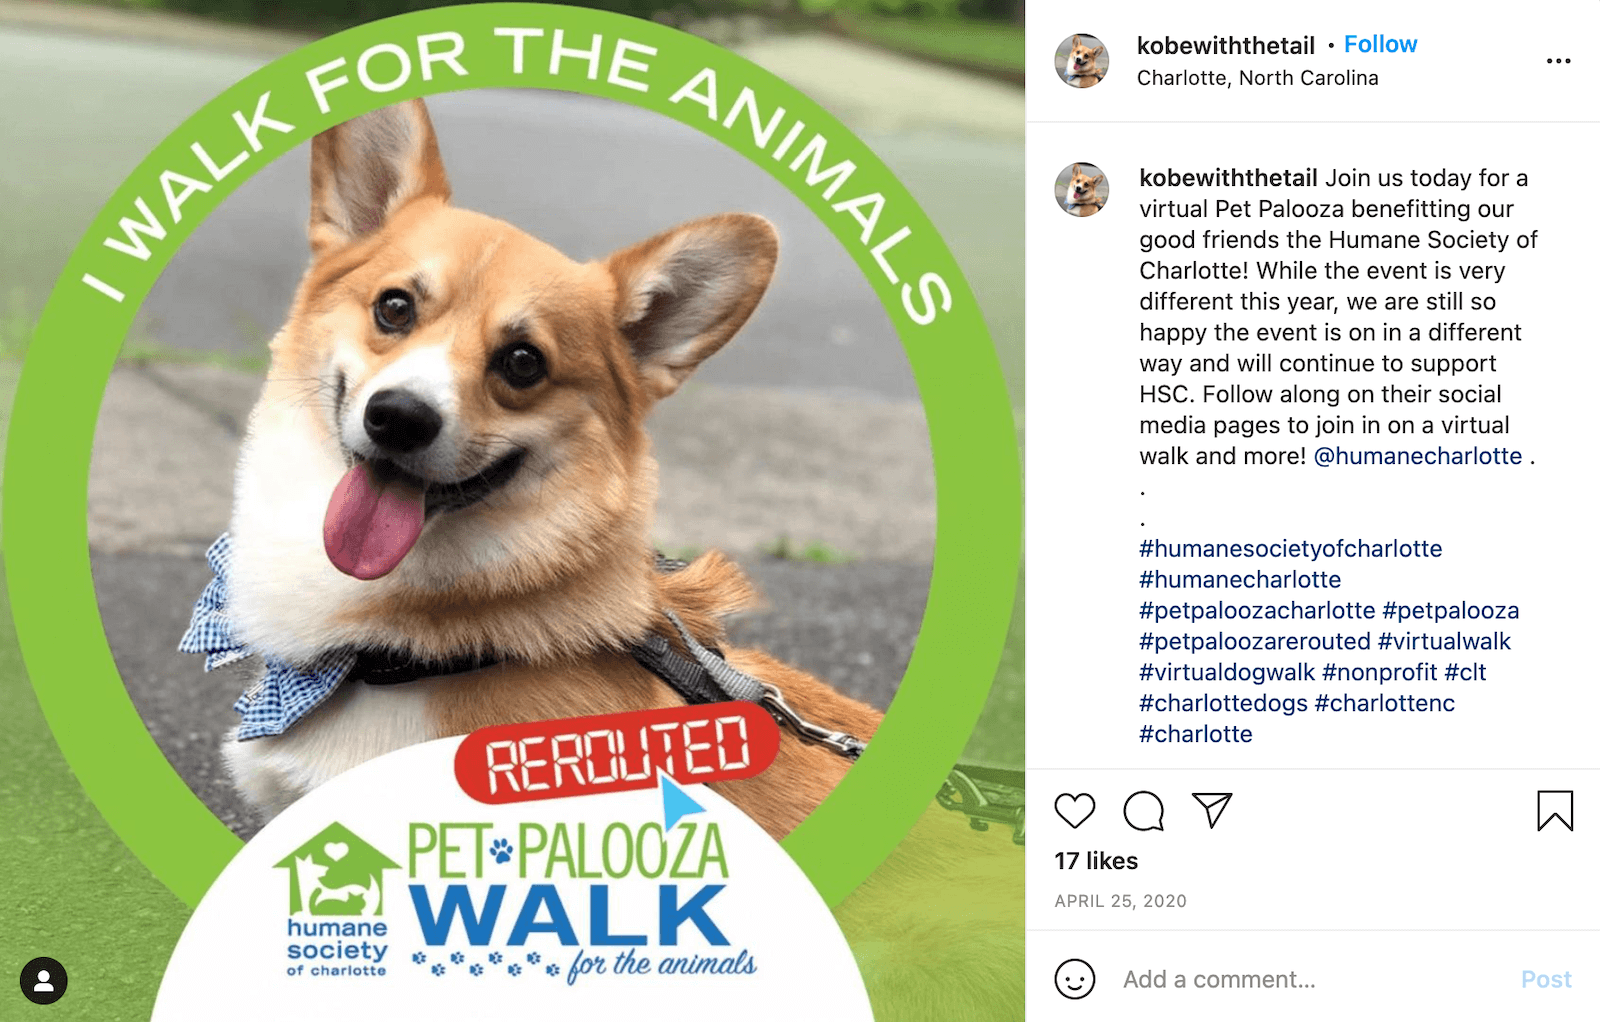 "Instagram post by user @kobewiththetail shows a photo of a smiling corgi with blue-and-white gingham bow tie within a social media frame for Pet Palooza Rerouted that says ""I walk for the animals"".  The caption reads: Join us today for a virtual Pet Palooza benefitting our good friends the Humane Society of Charlotte! While the event is very different this year, we are still so happy the event is on in a different way and will continue to support HSC. Follow along on their social media pages to join in on a virtual walk and more! @humanecharlotte . . . #humanesocietyofcharlotte #humanecharlotte #petpaloozacharlotte #petpalooza #petpaloozarerouted #virtualwalk #virtualdogwalk #nonprofit #clt #charlottedogs #charlottenc #charlotte"